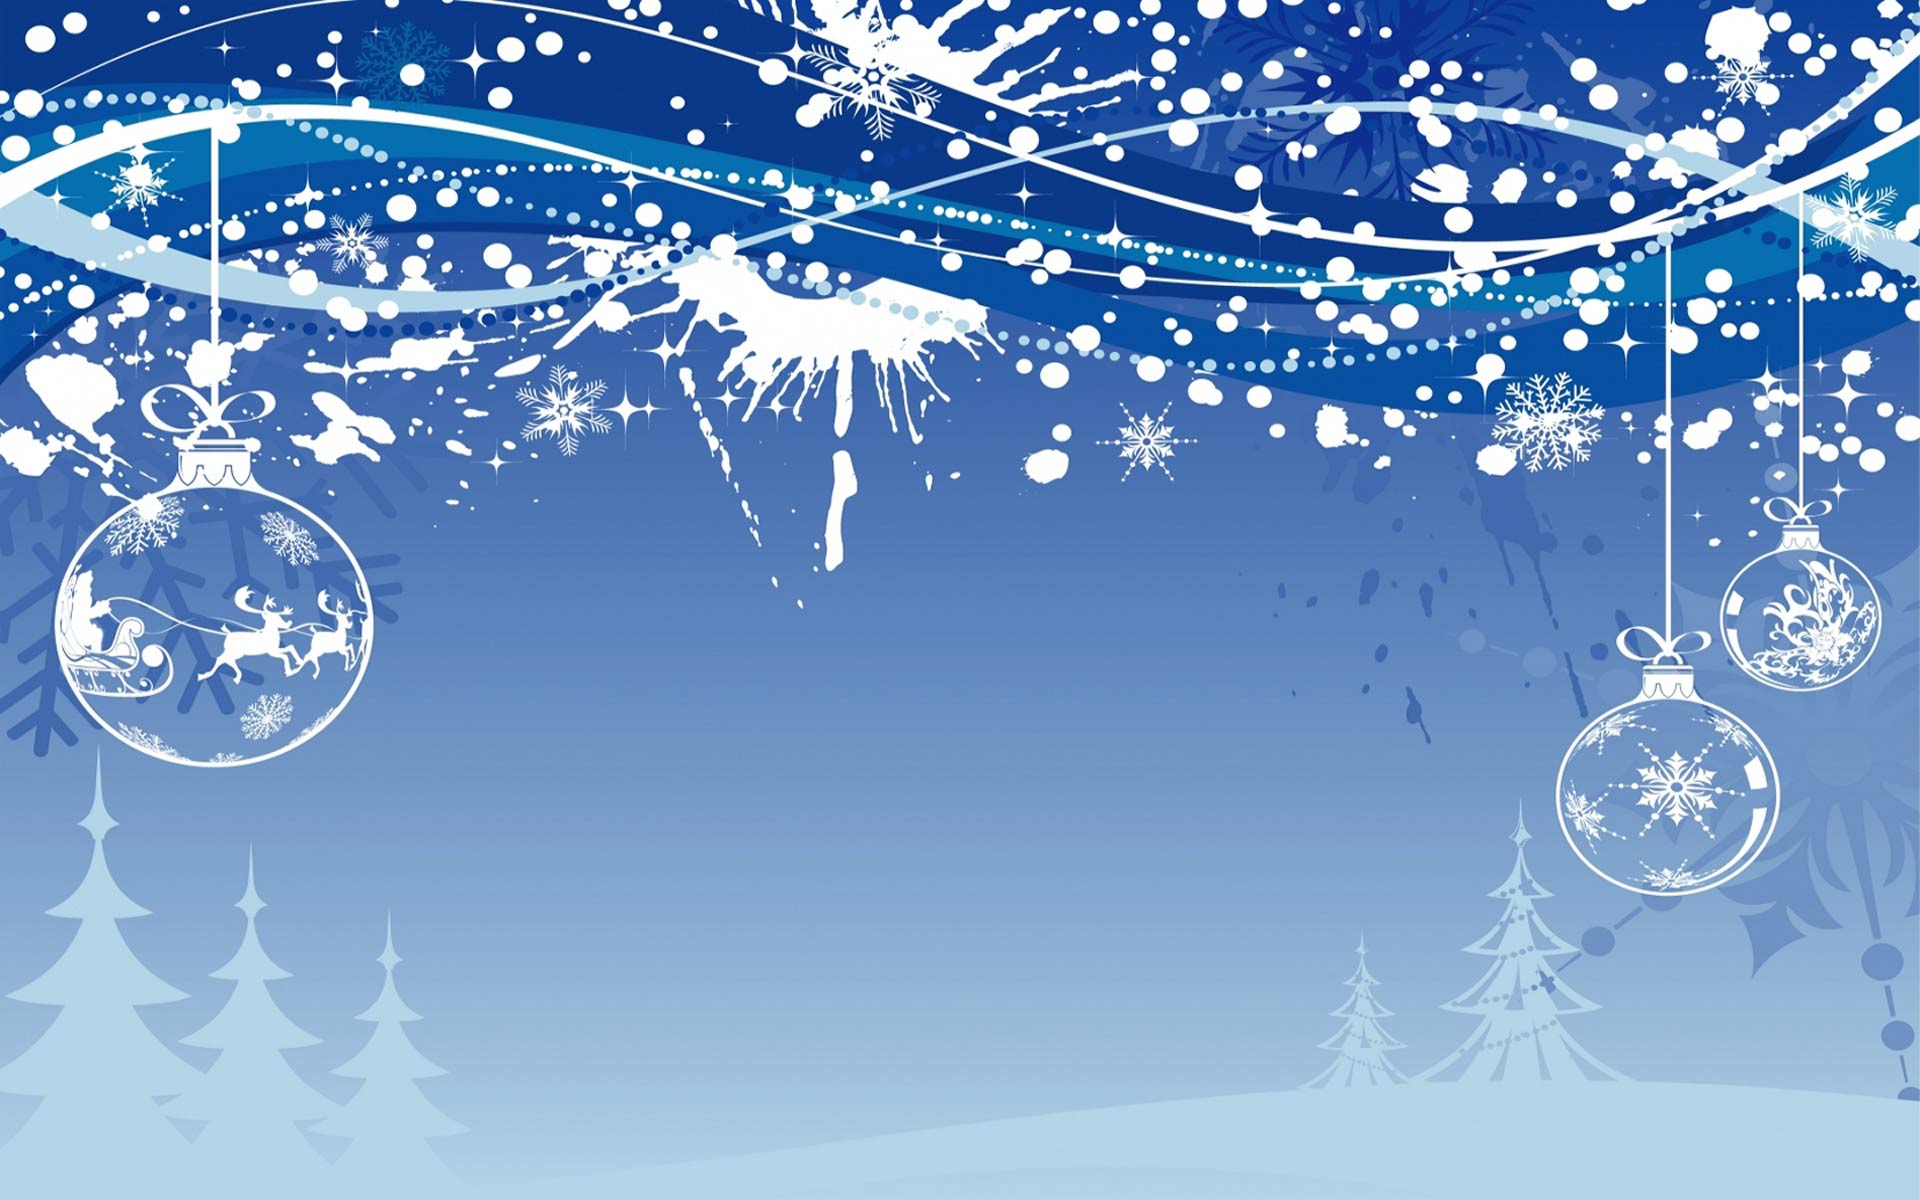 Christmas Songs Christian Pictures Wallpapers